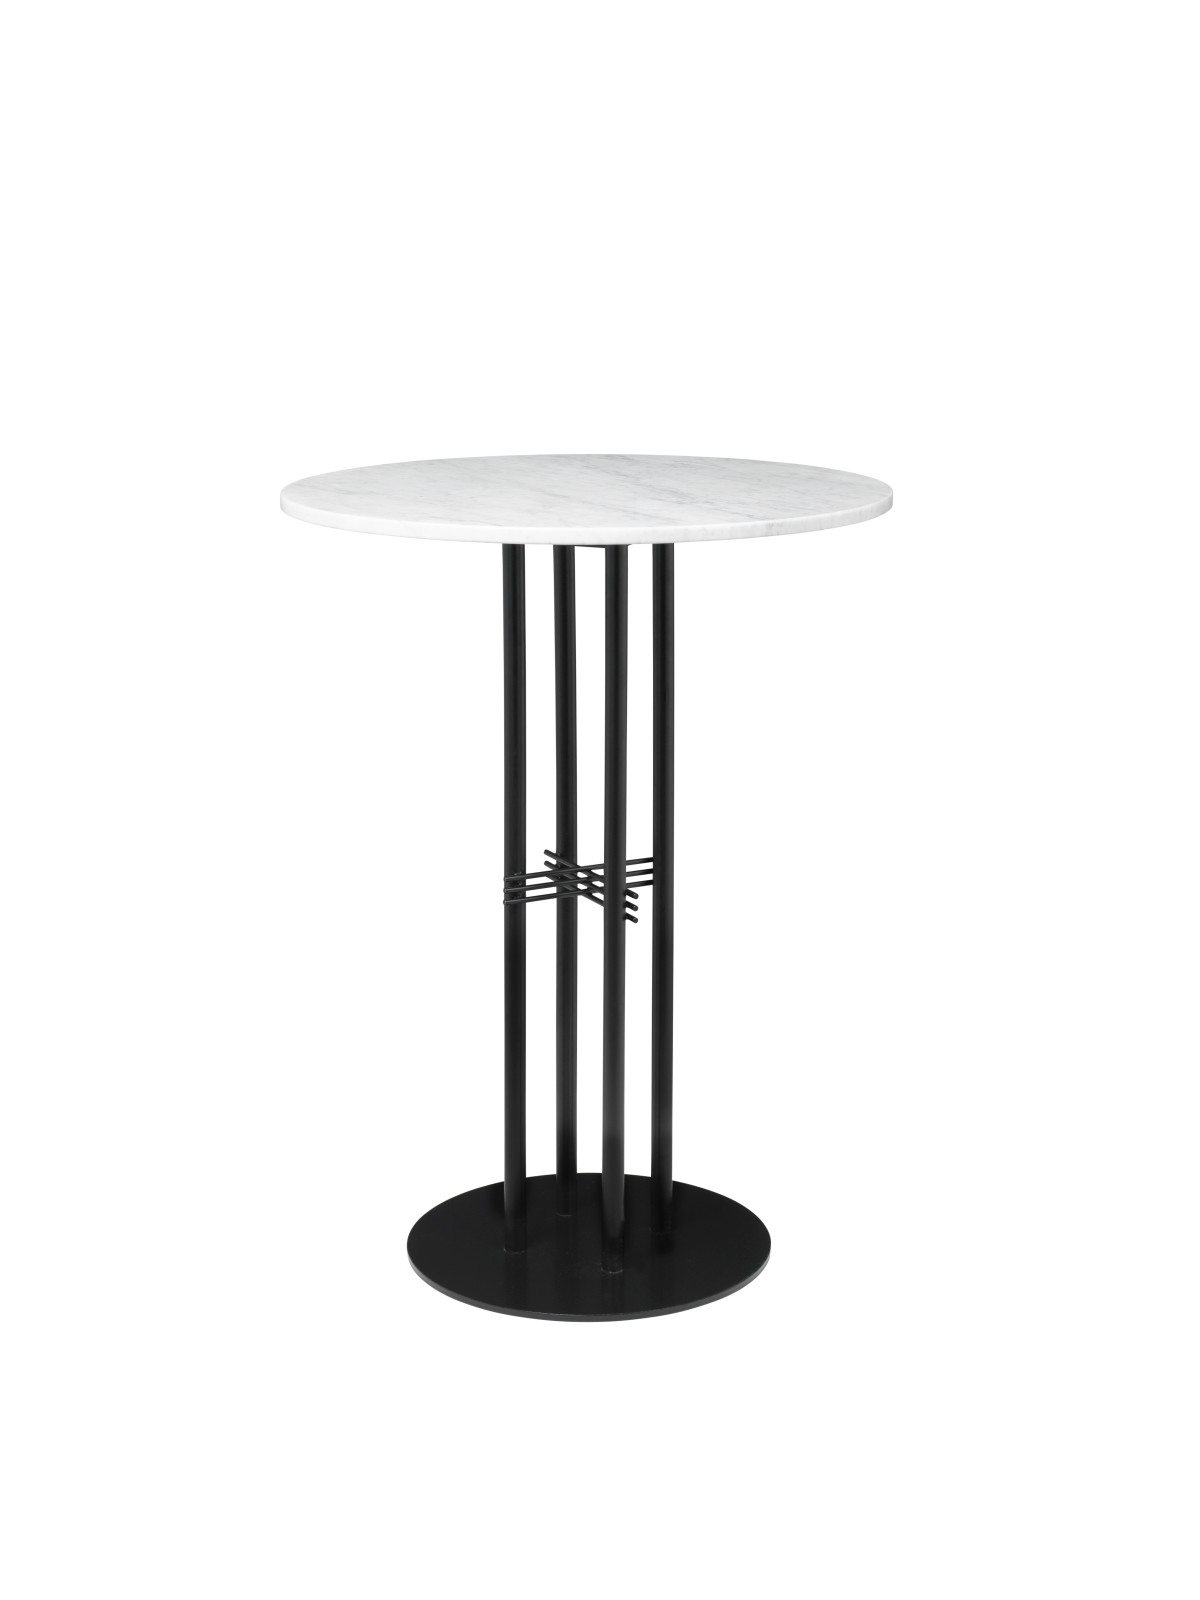 TS Column Bar Table Marble 080, Frame Matt Black, Gubi Marble Bianco Carrara